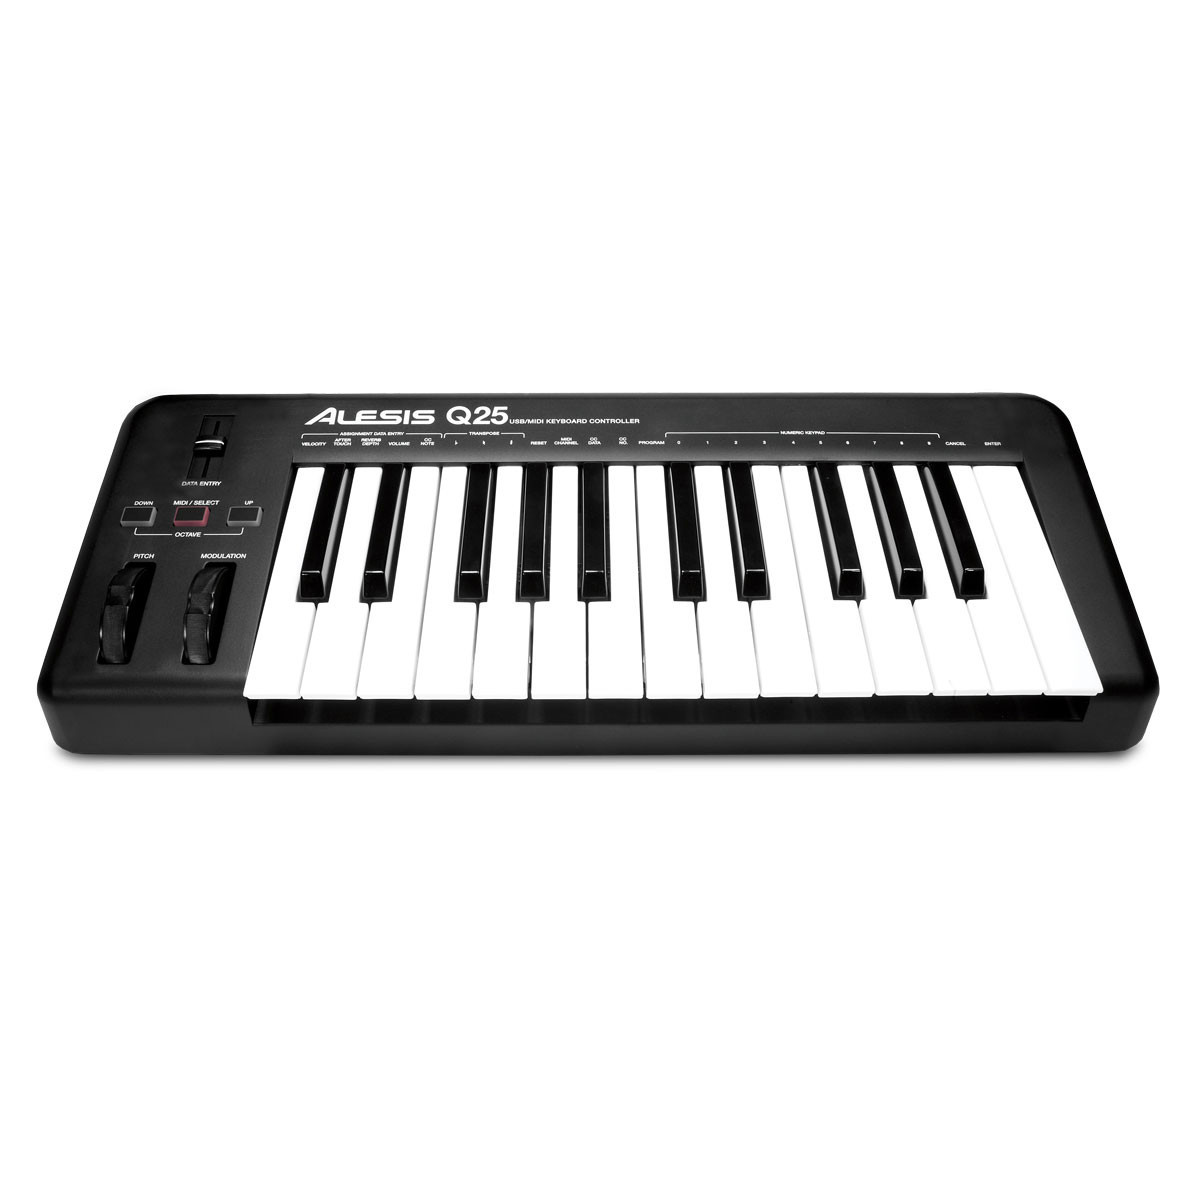 Image of Alesis Q25 25 Key USB/MIDI Keyboard